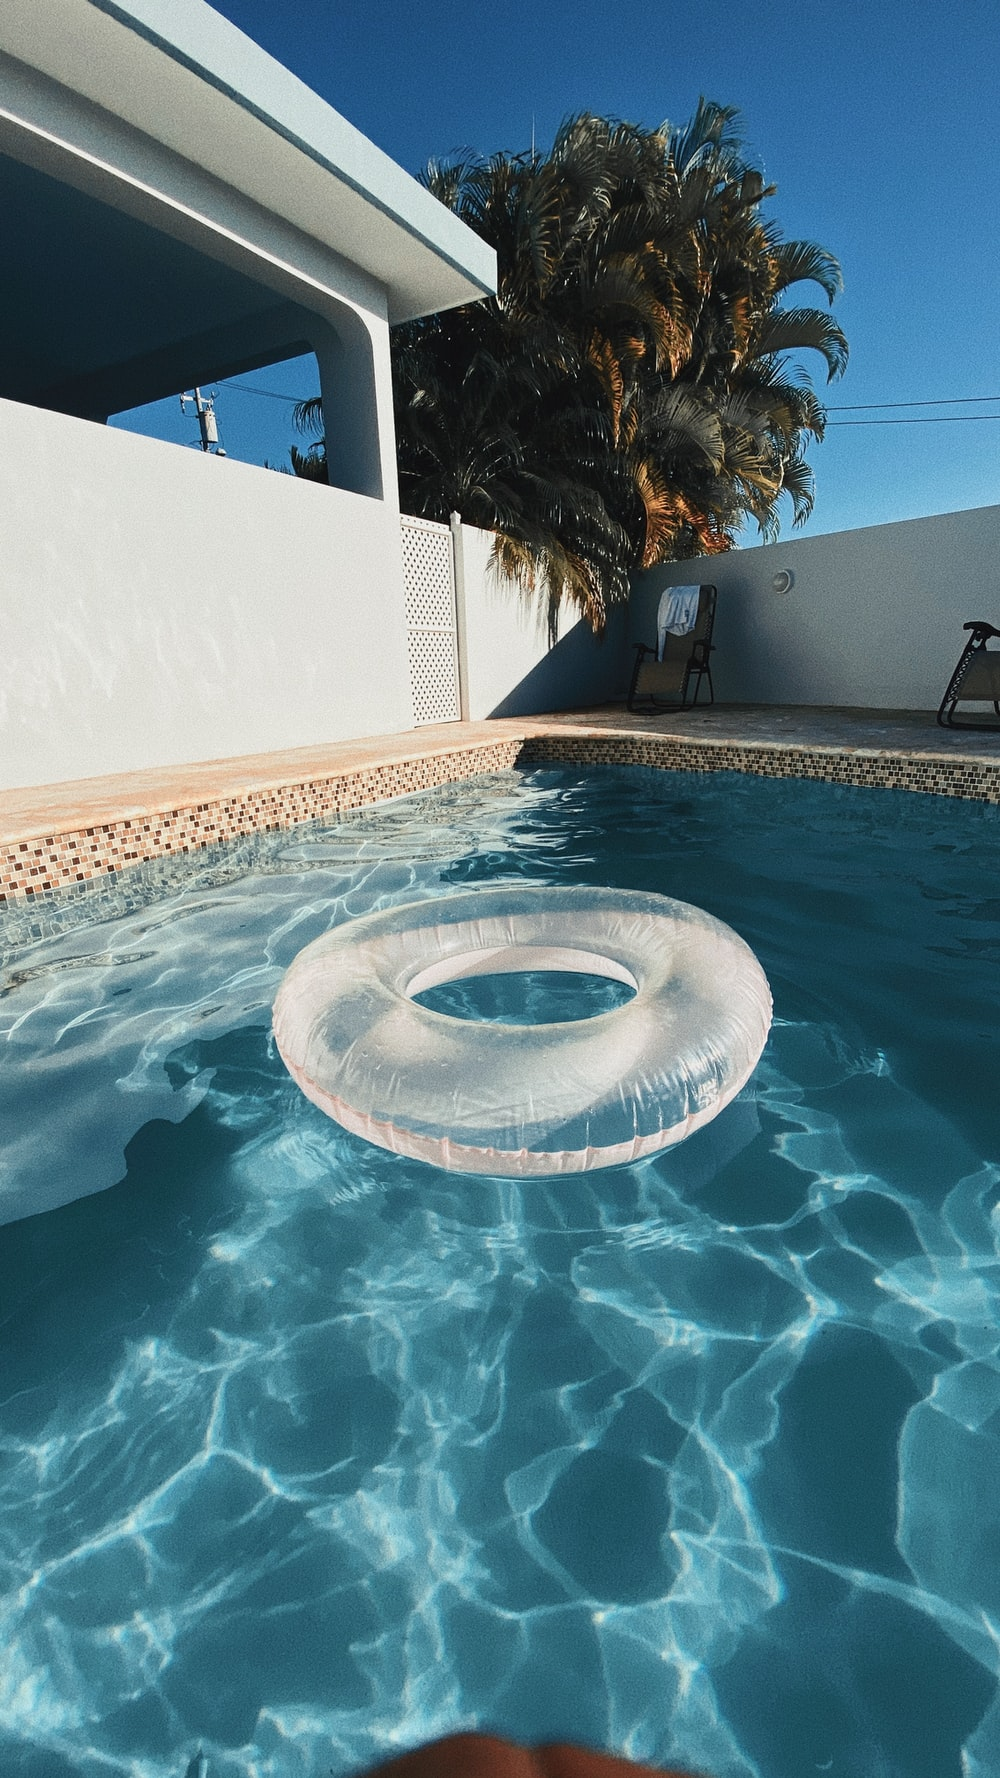 white life donut on swimming pool